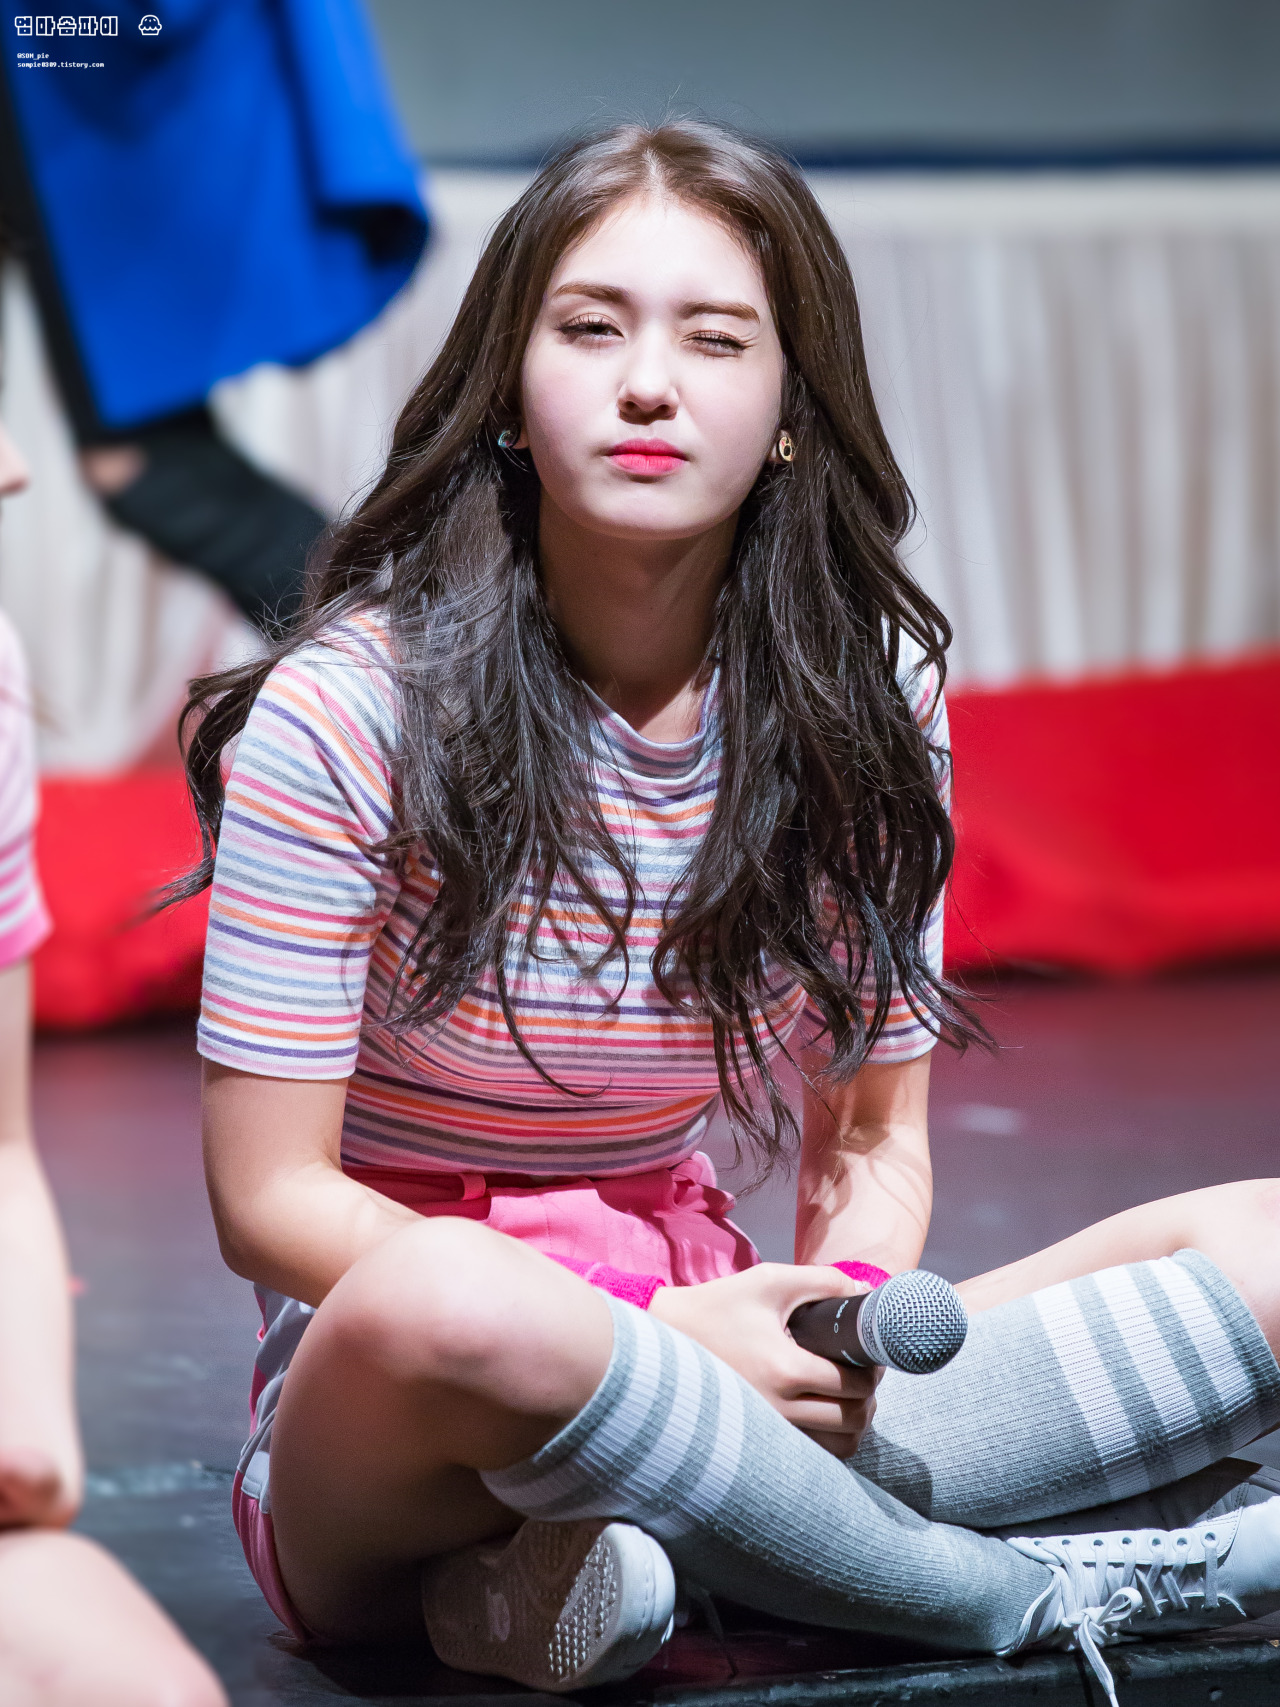 Jeon Somi Android/iPhone Wallpaper #90463 - Asiachan KPOP